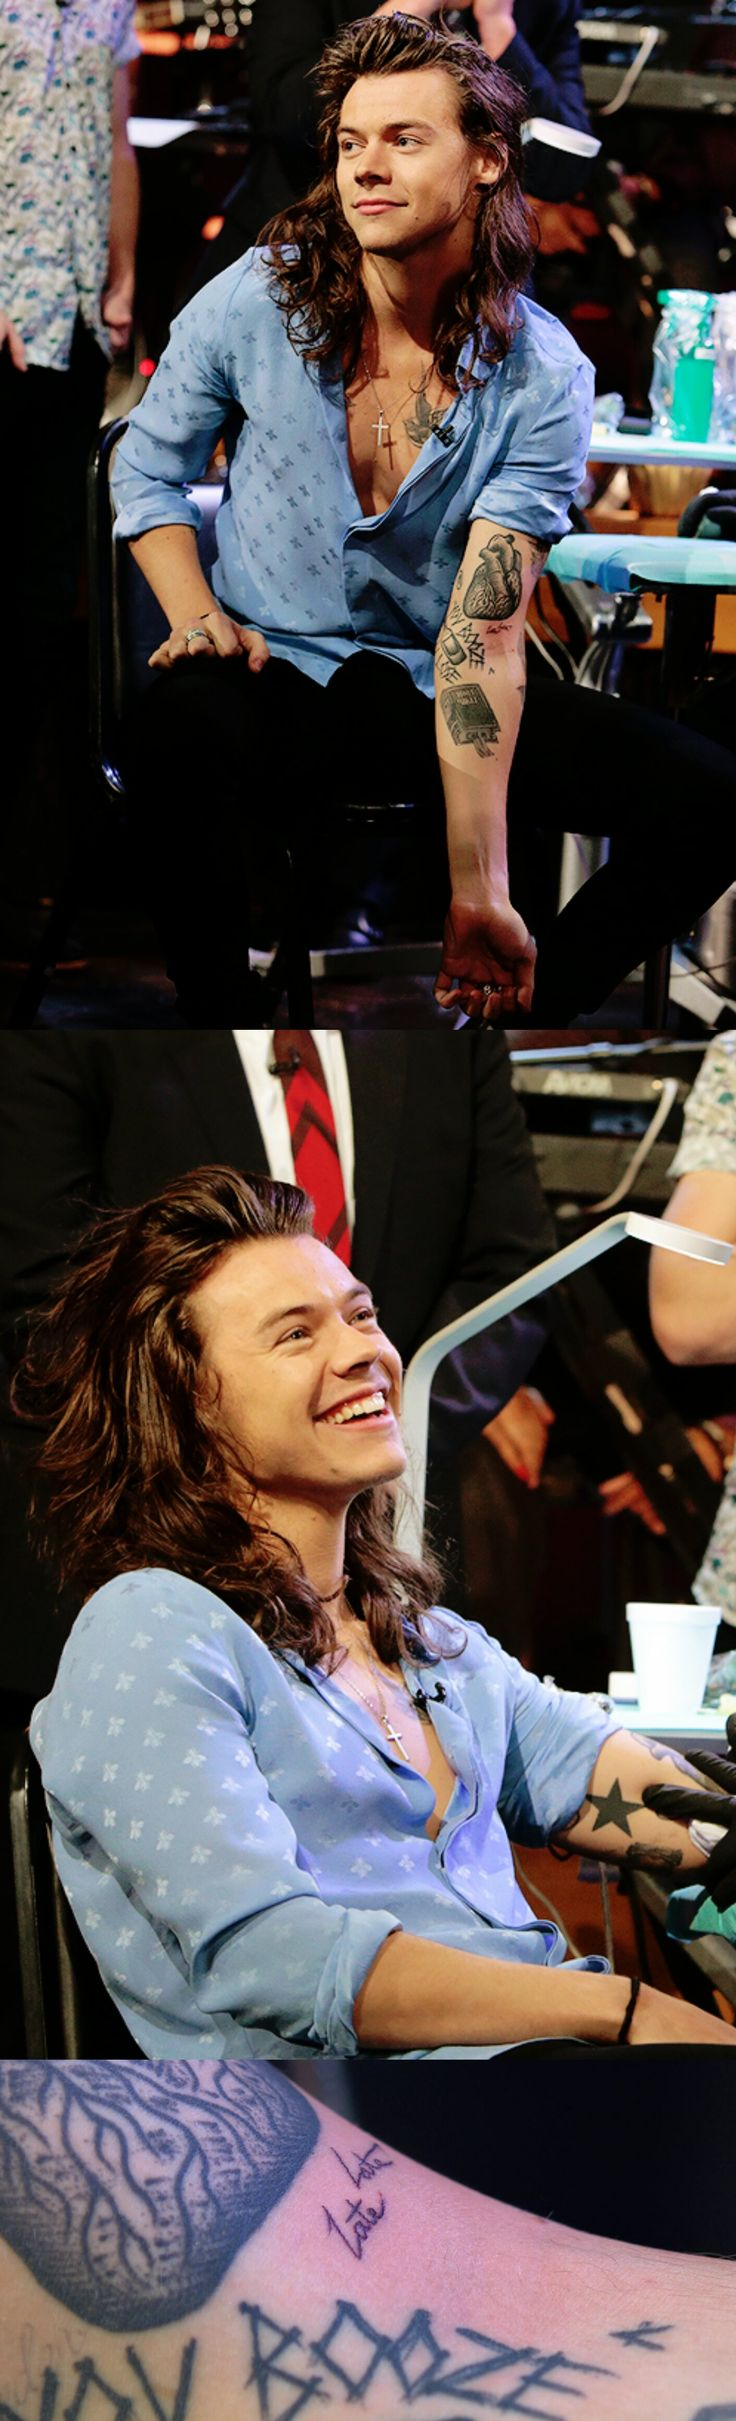 "Harry Styles ❥ got a new tattoo ""Late Late"" at the James Corden show."